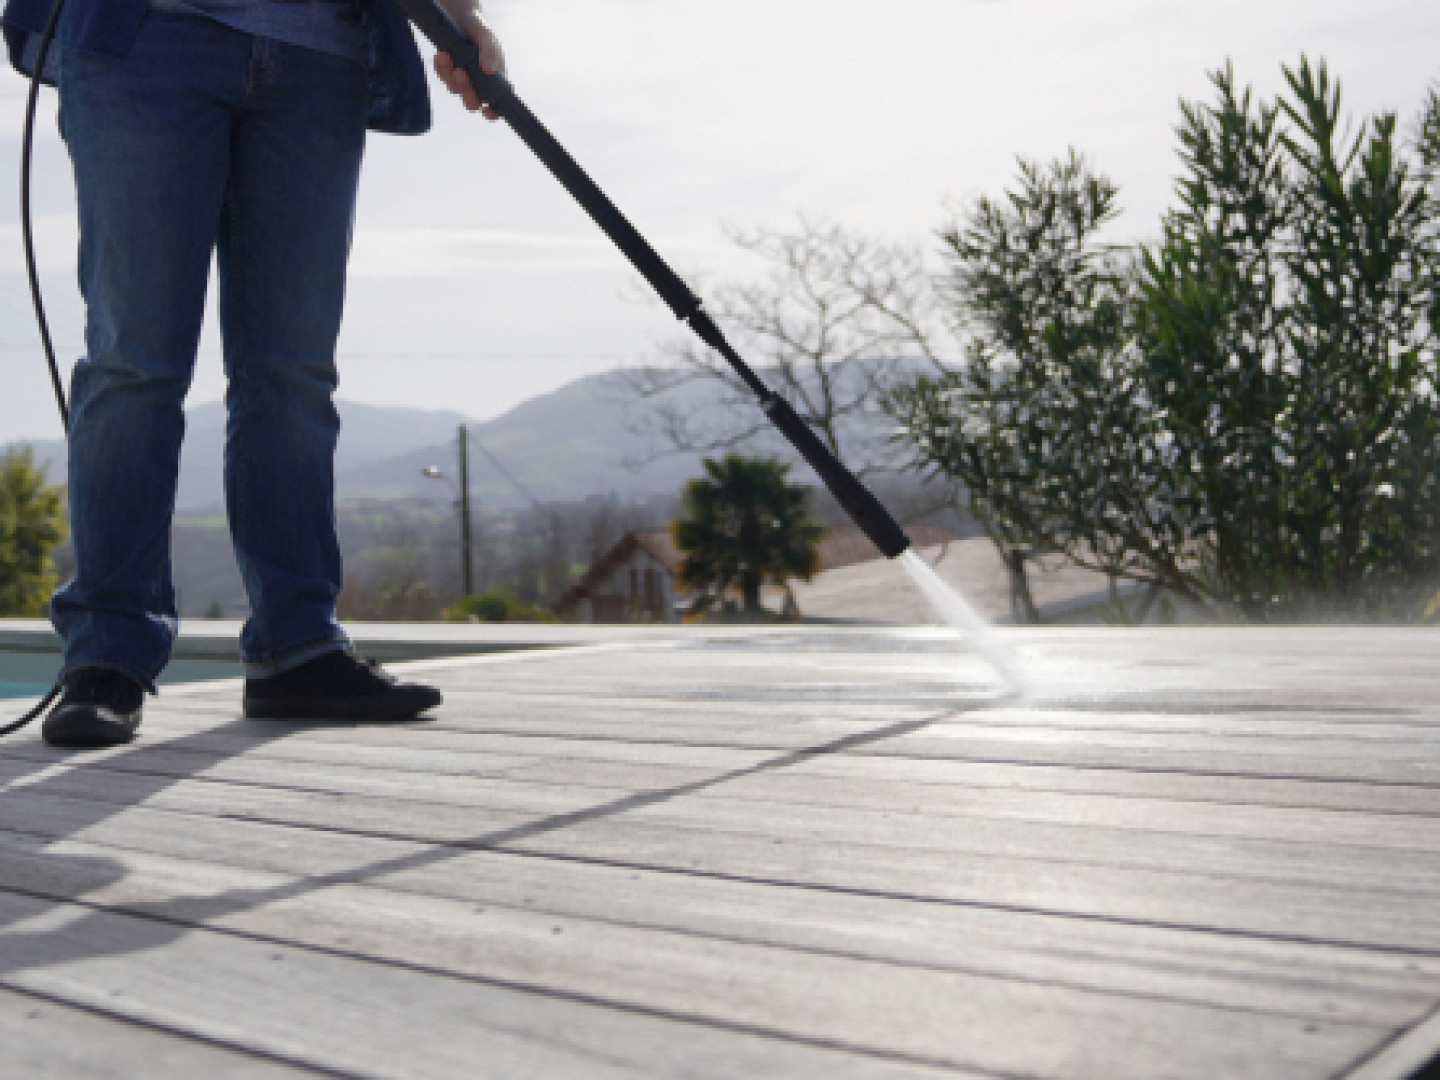 Get Rid of Stubborn Dirt and Grime after a long, messy winter